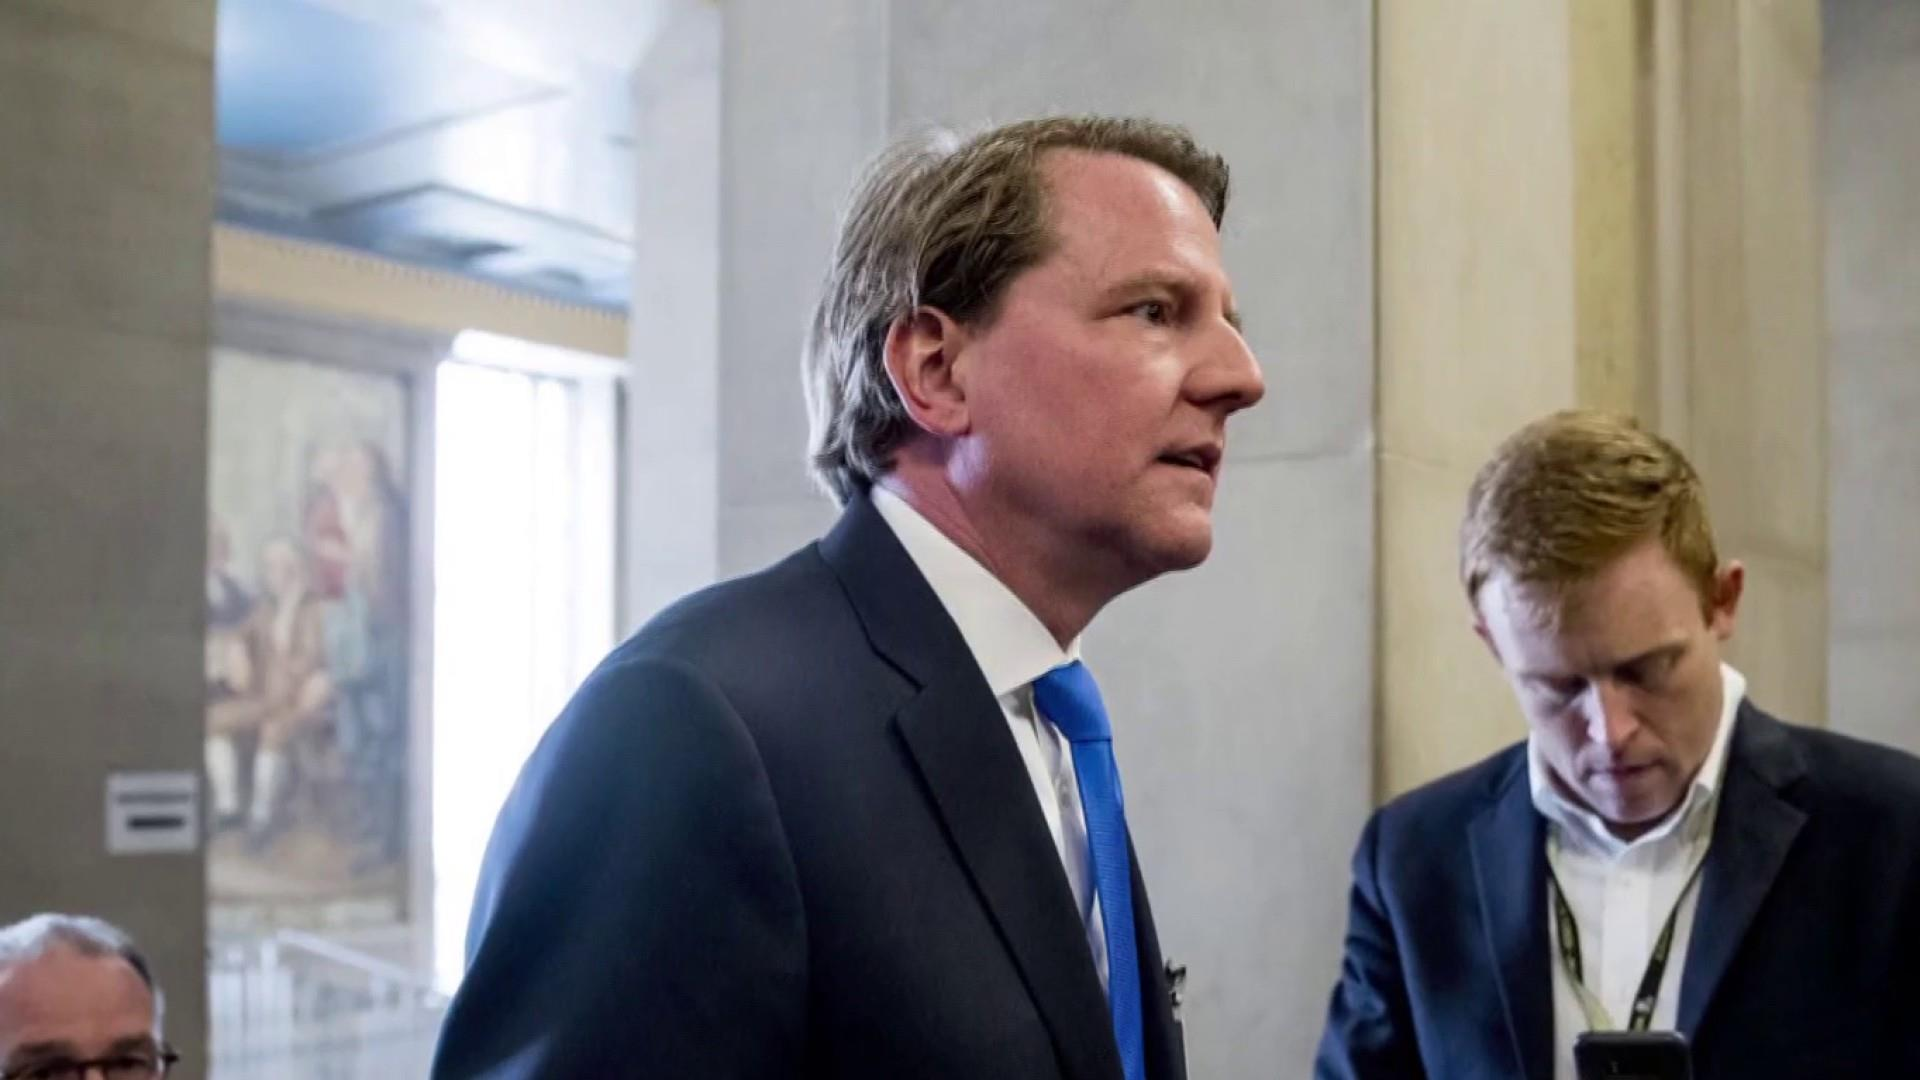 Democrats ramp up impeachment talk as ex-White House counsel refuses to testify